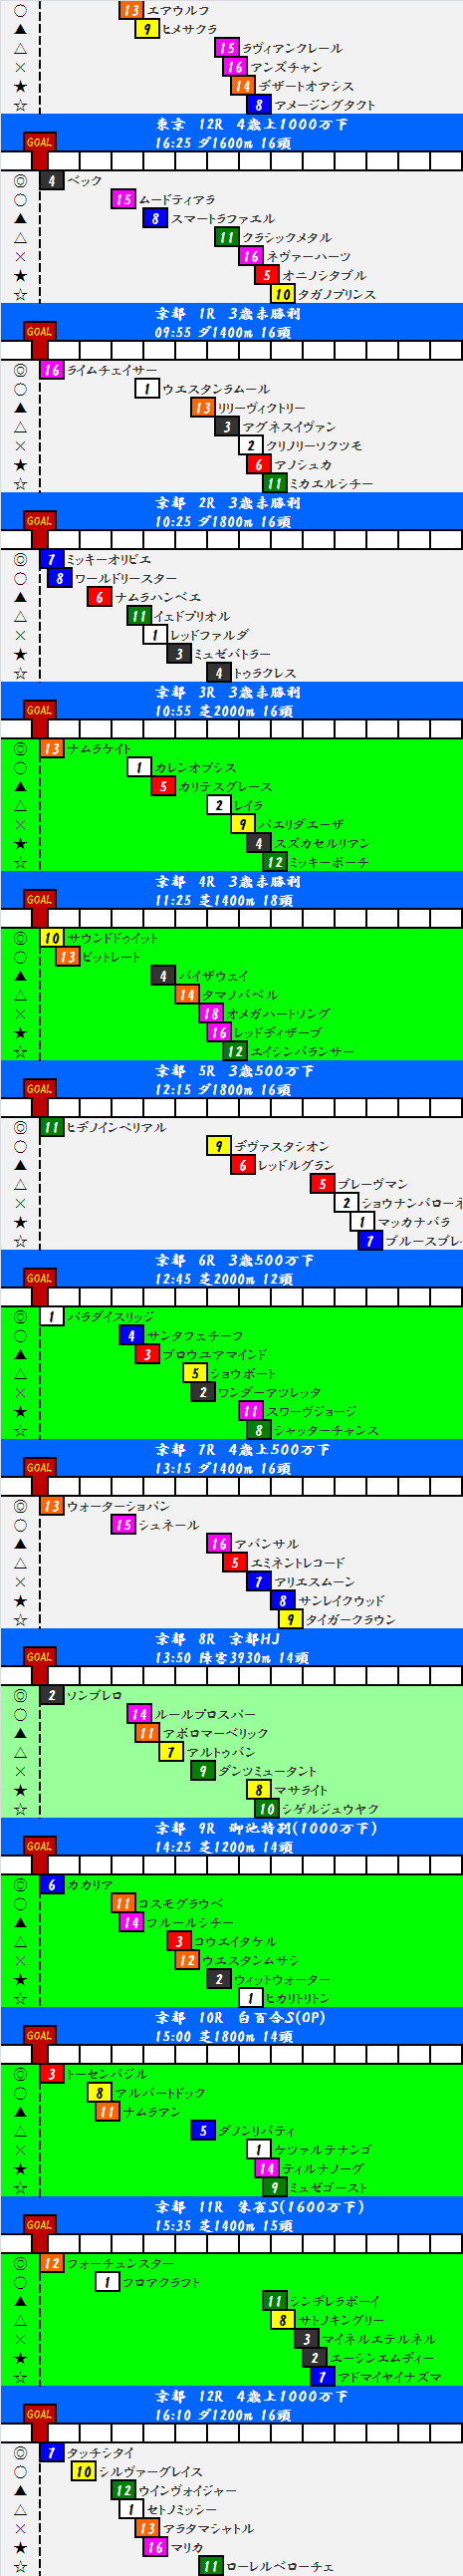 2015053002.png